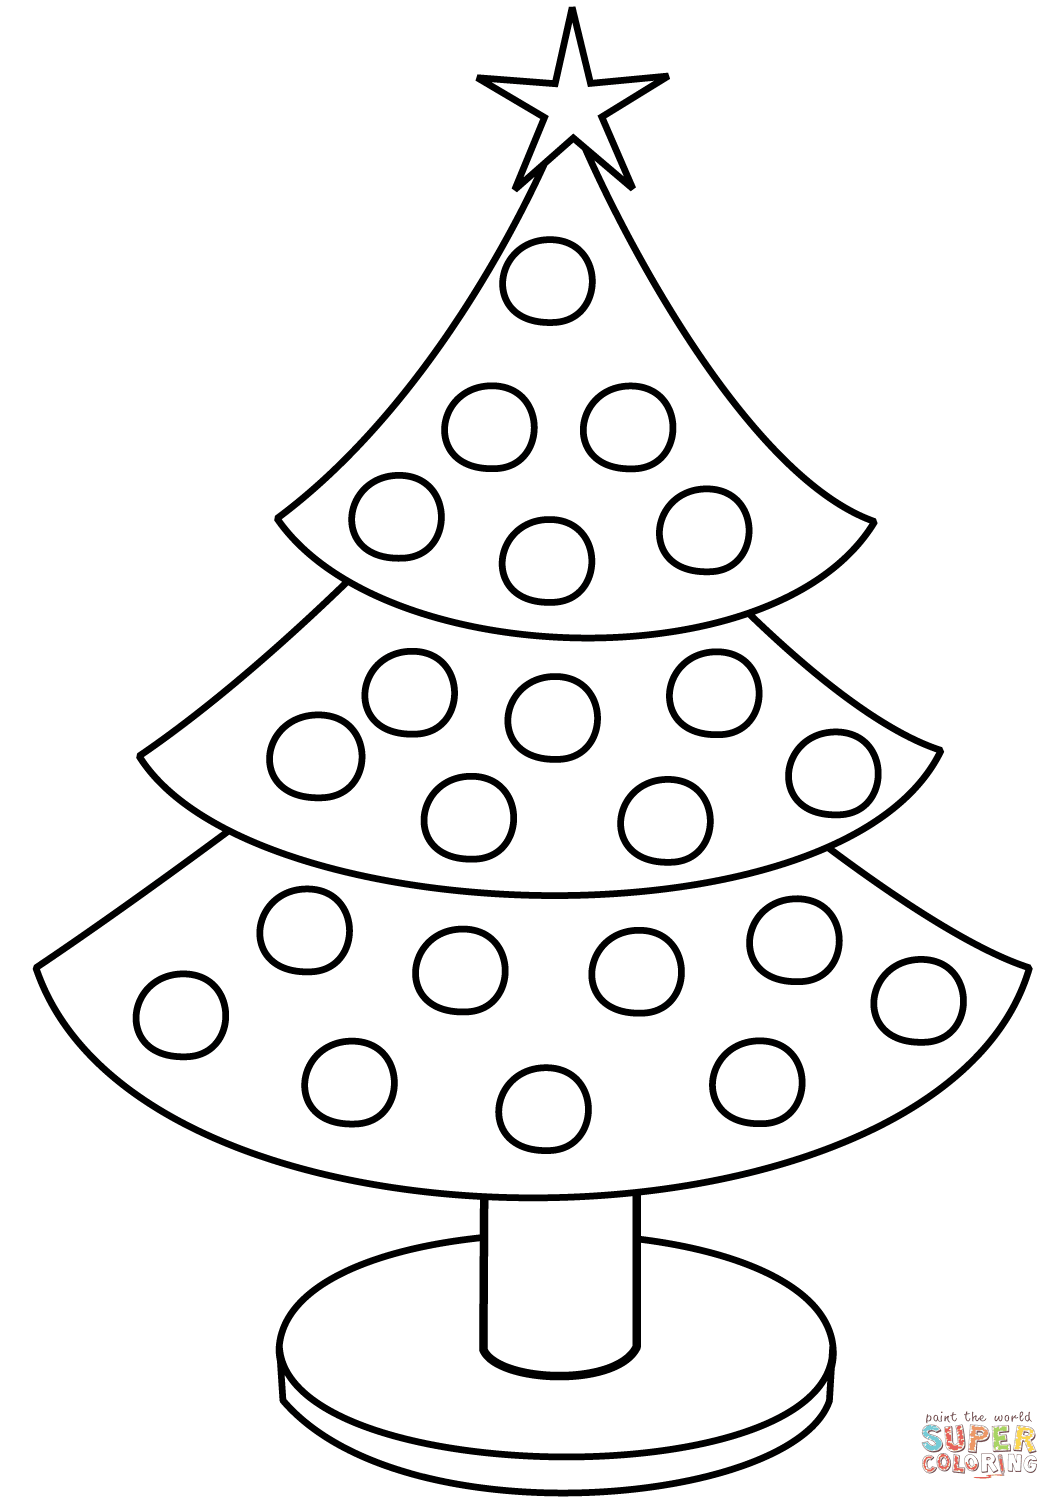 1060x1500 Christmas Tree Coloring Page Free Printable Coloring Pages